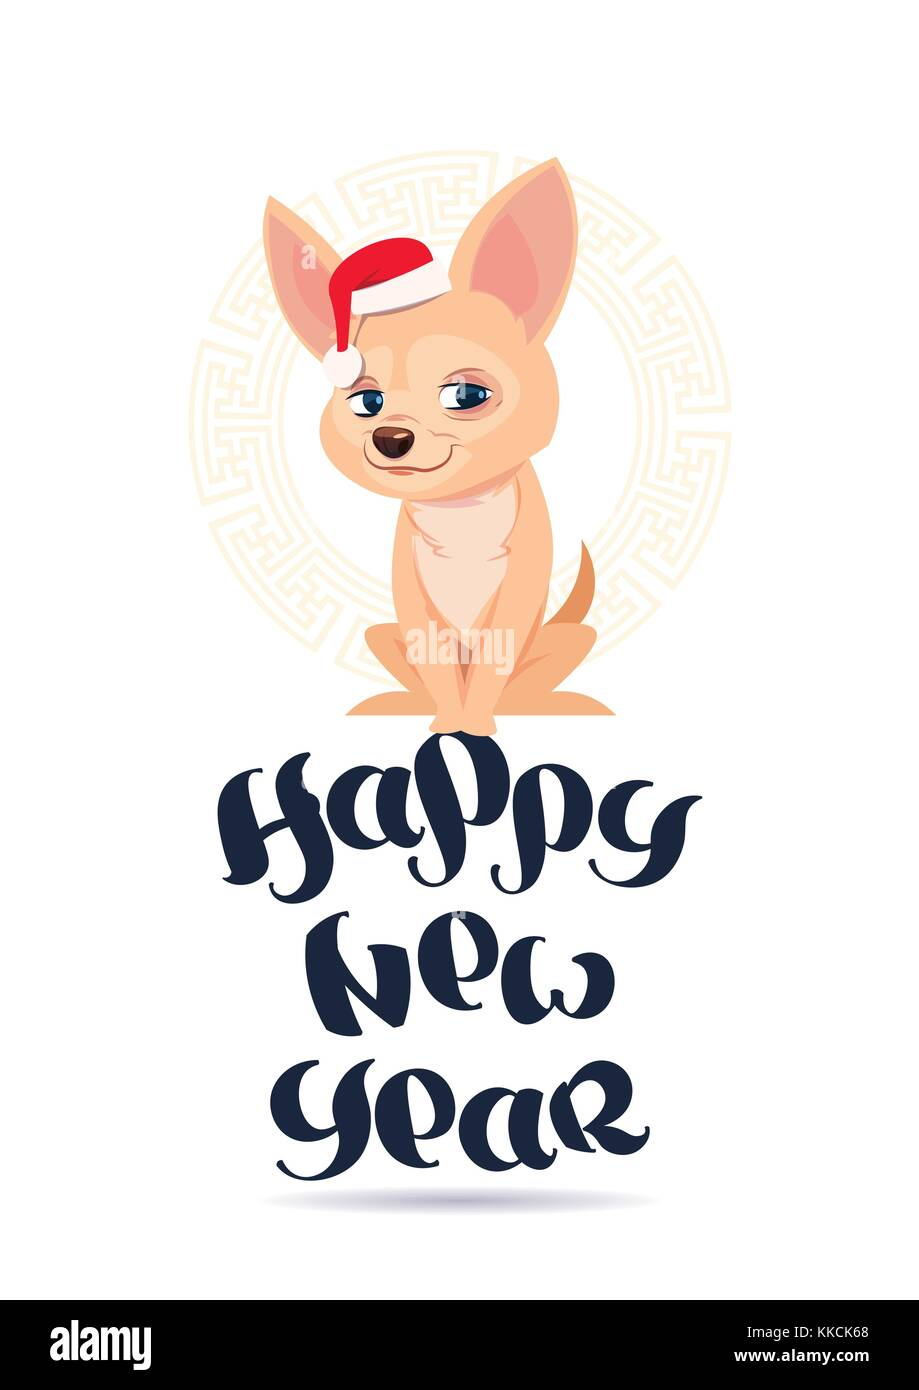 Happy New Year 2018 Greeting Card With Cute Chihuahua Dog In Santa ...